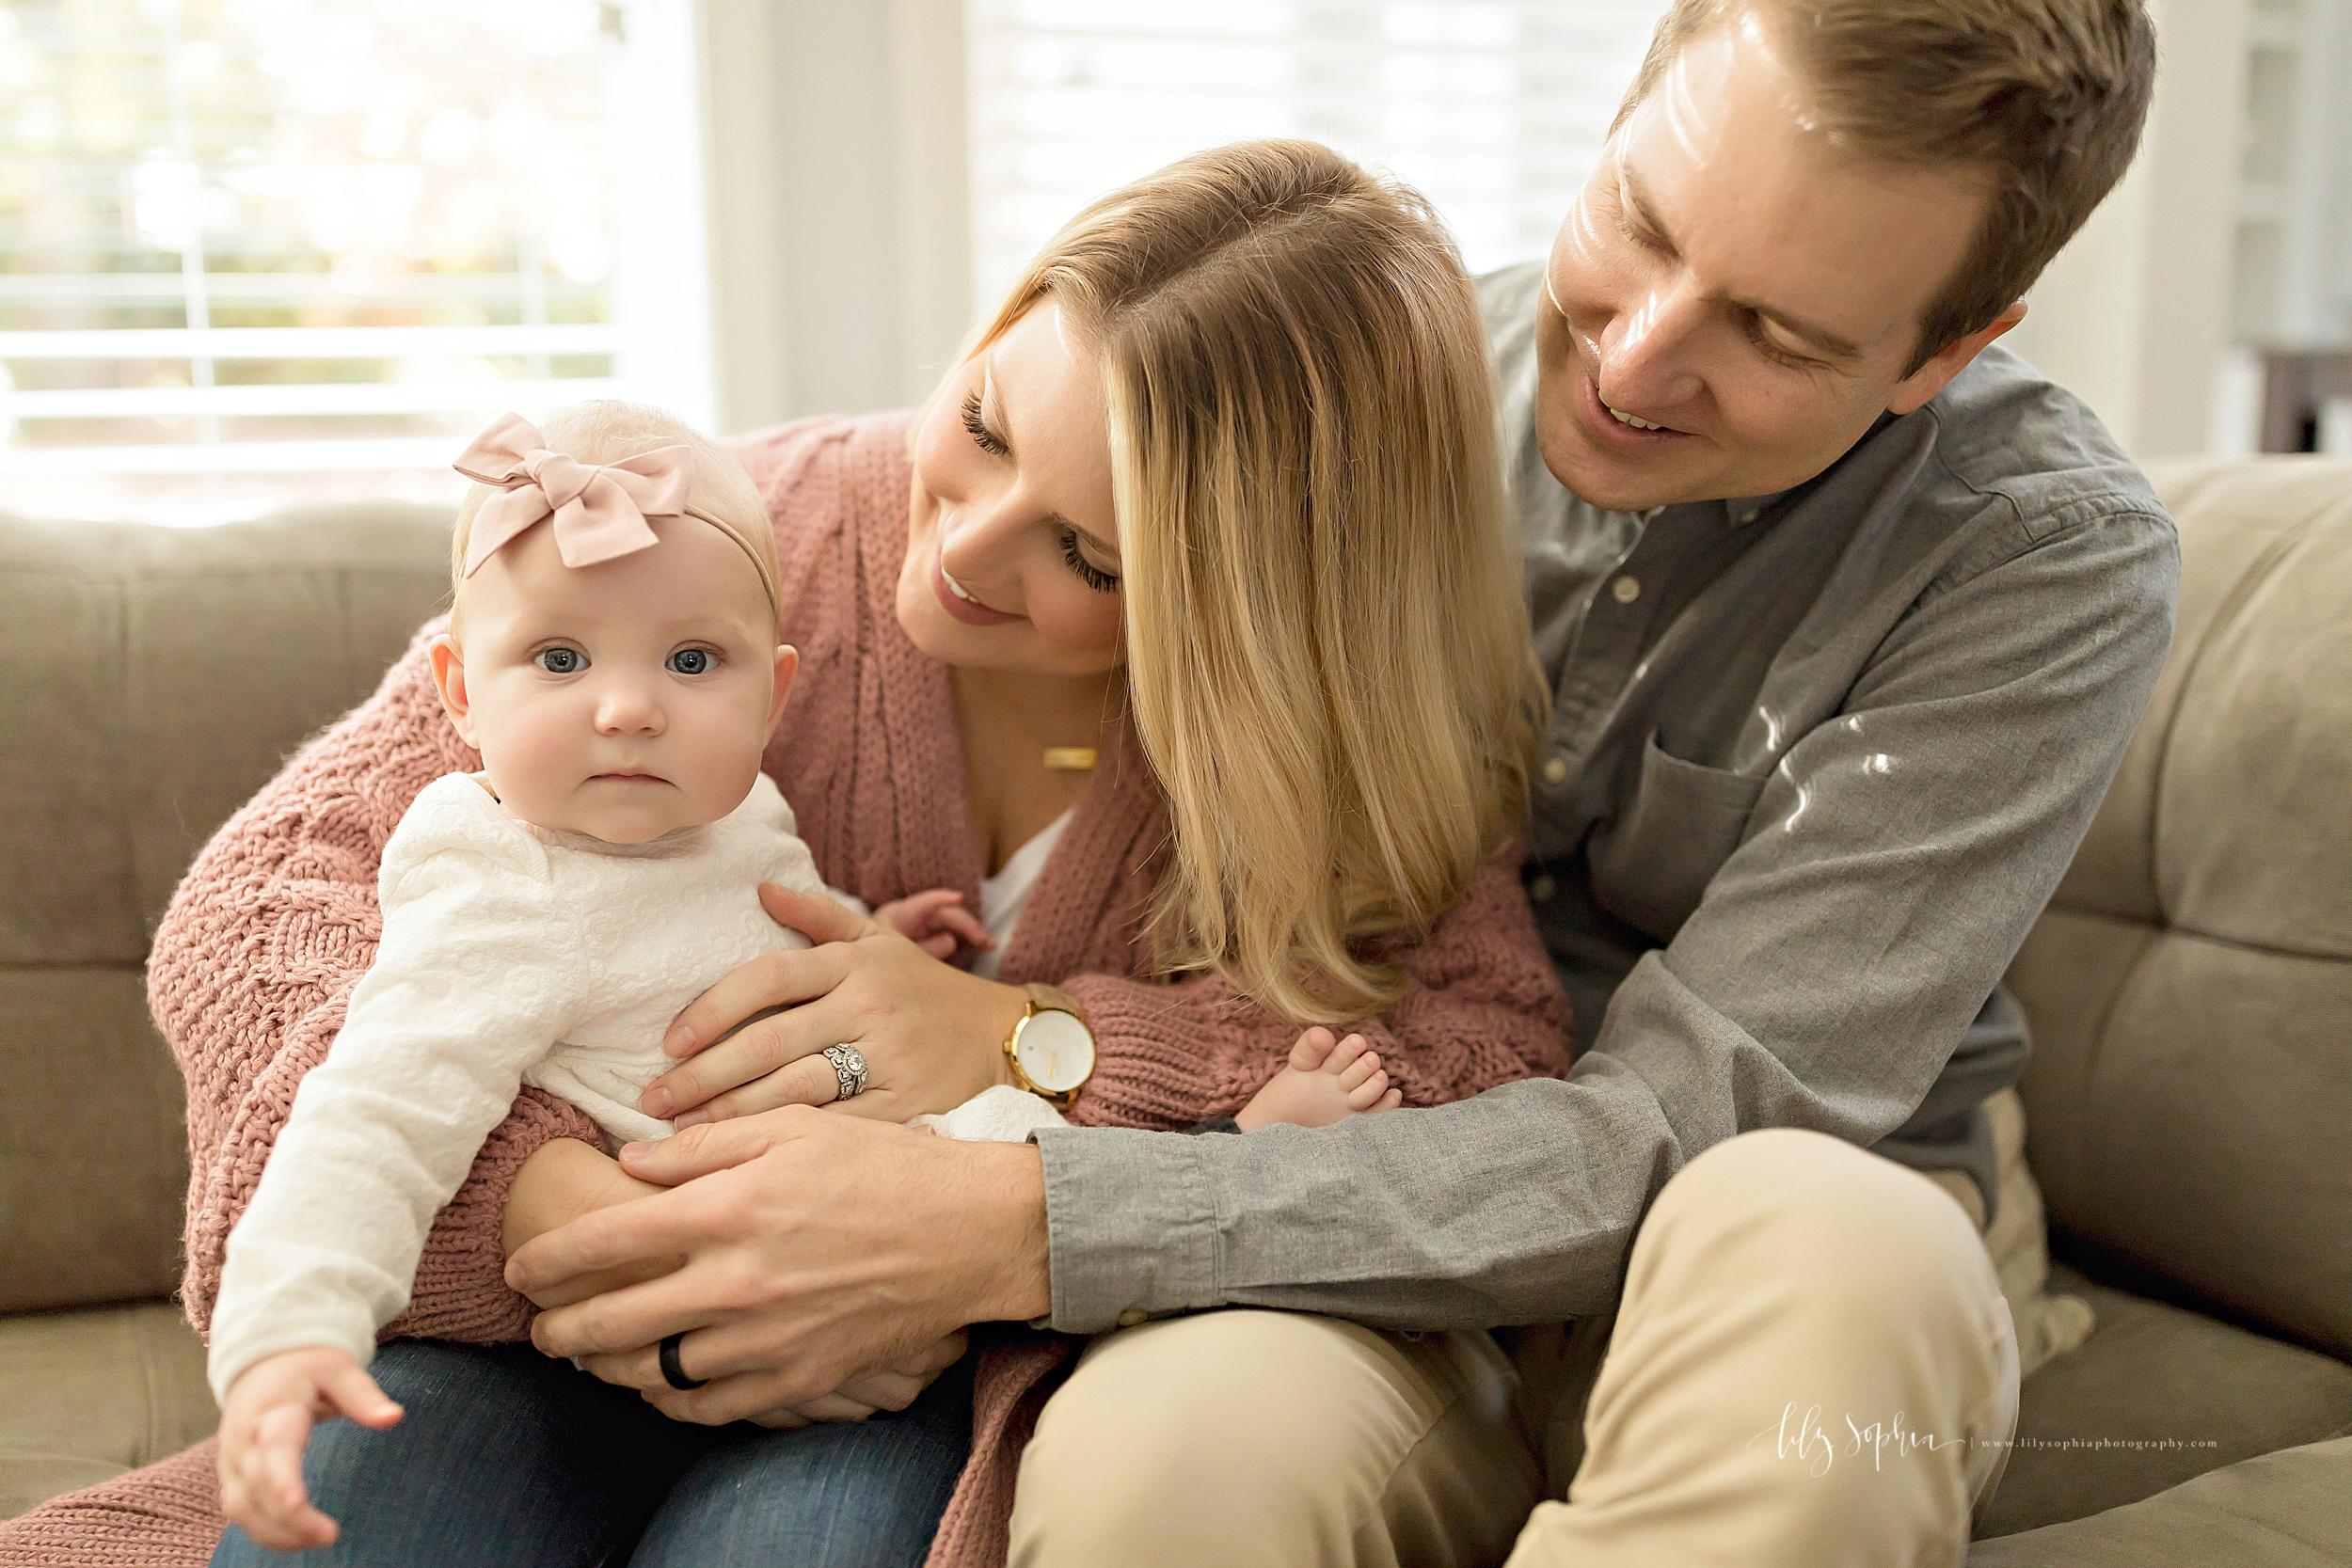 atlanta-midtown-brookhaven-ashford-dunwoody-virginia-highlands-roswell-decatur-lily-sophia-photography-in-home-six-month-milestone-family-lifestyle-session-sandy-springs_0651.jpg